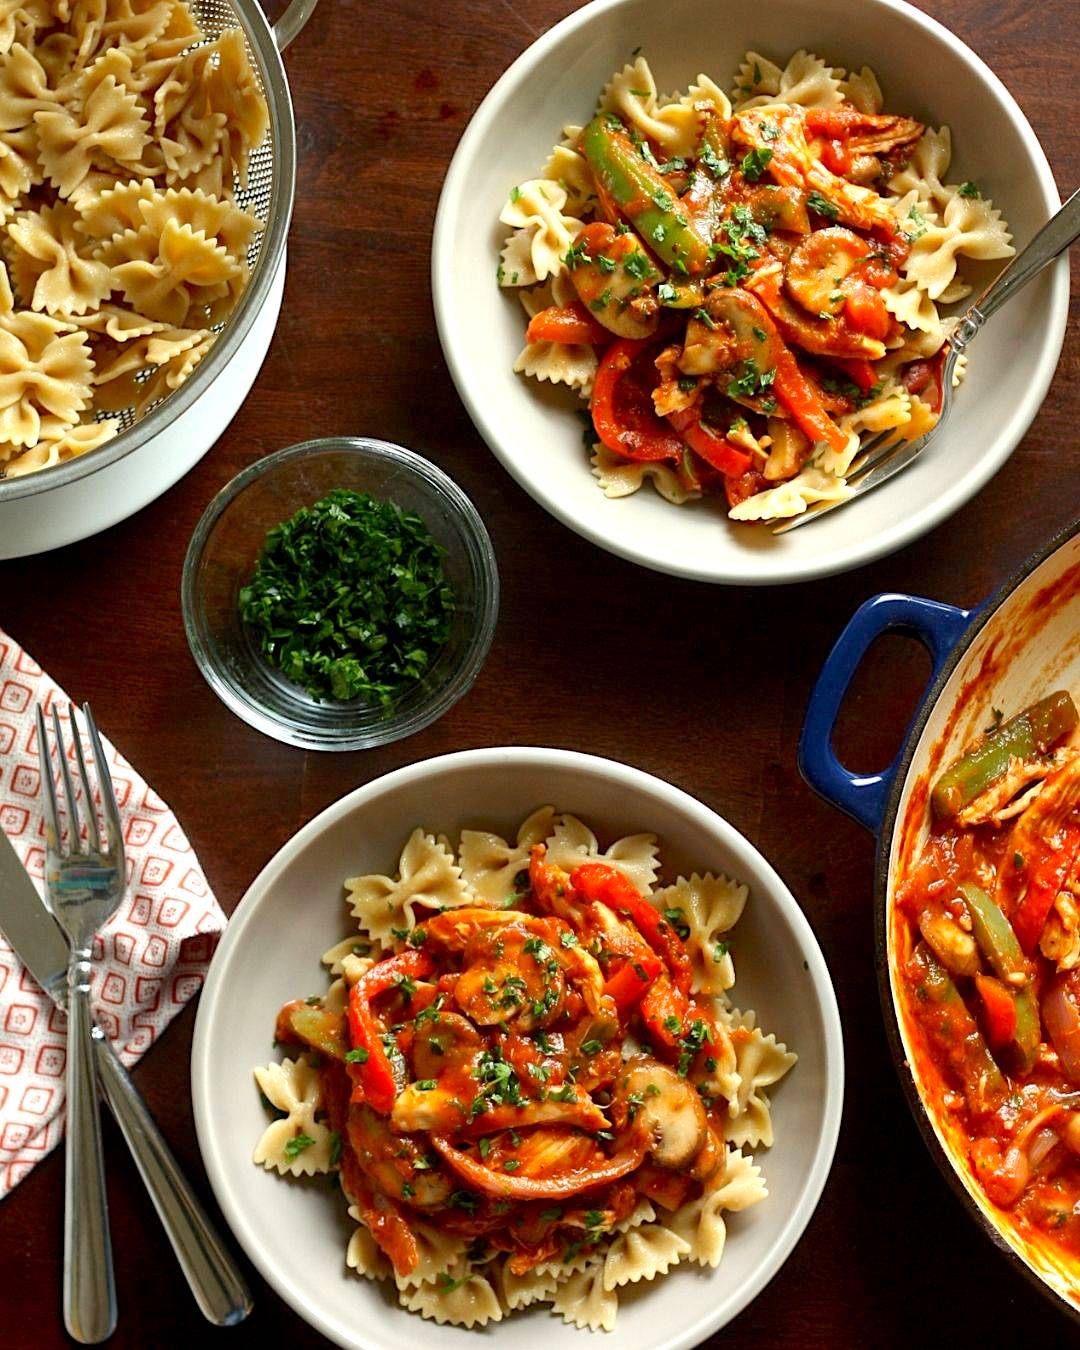 Dinner table setting with two bowls of chicken cacciatore pasta.